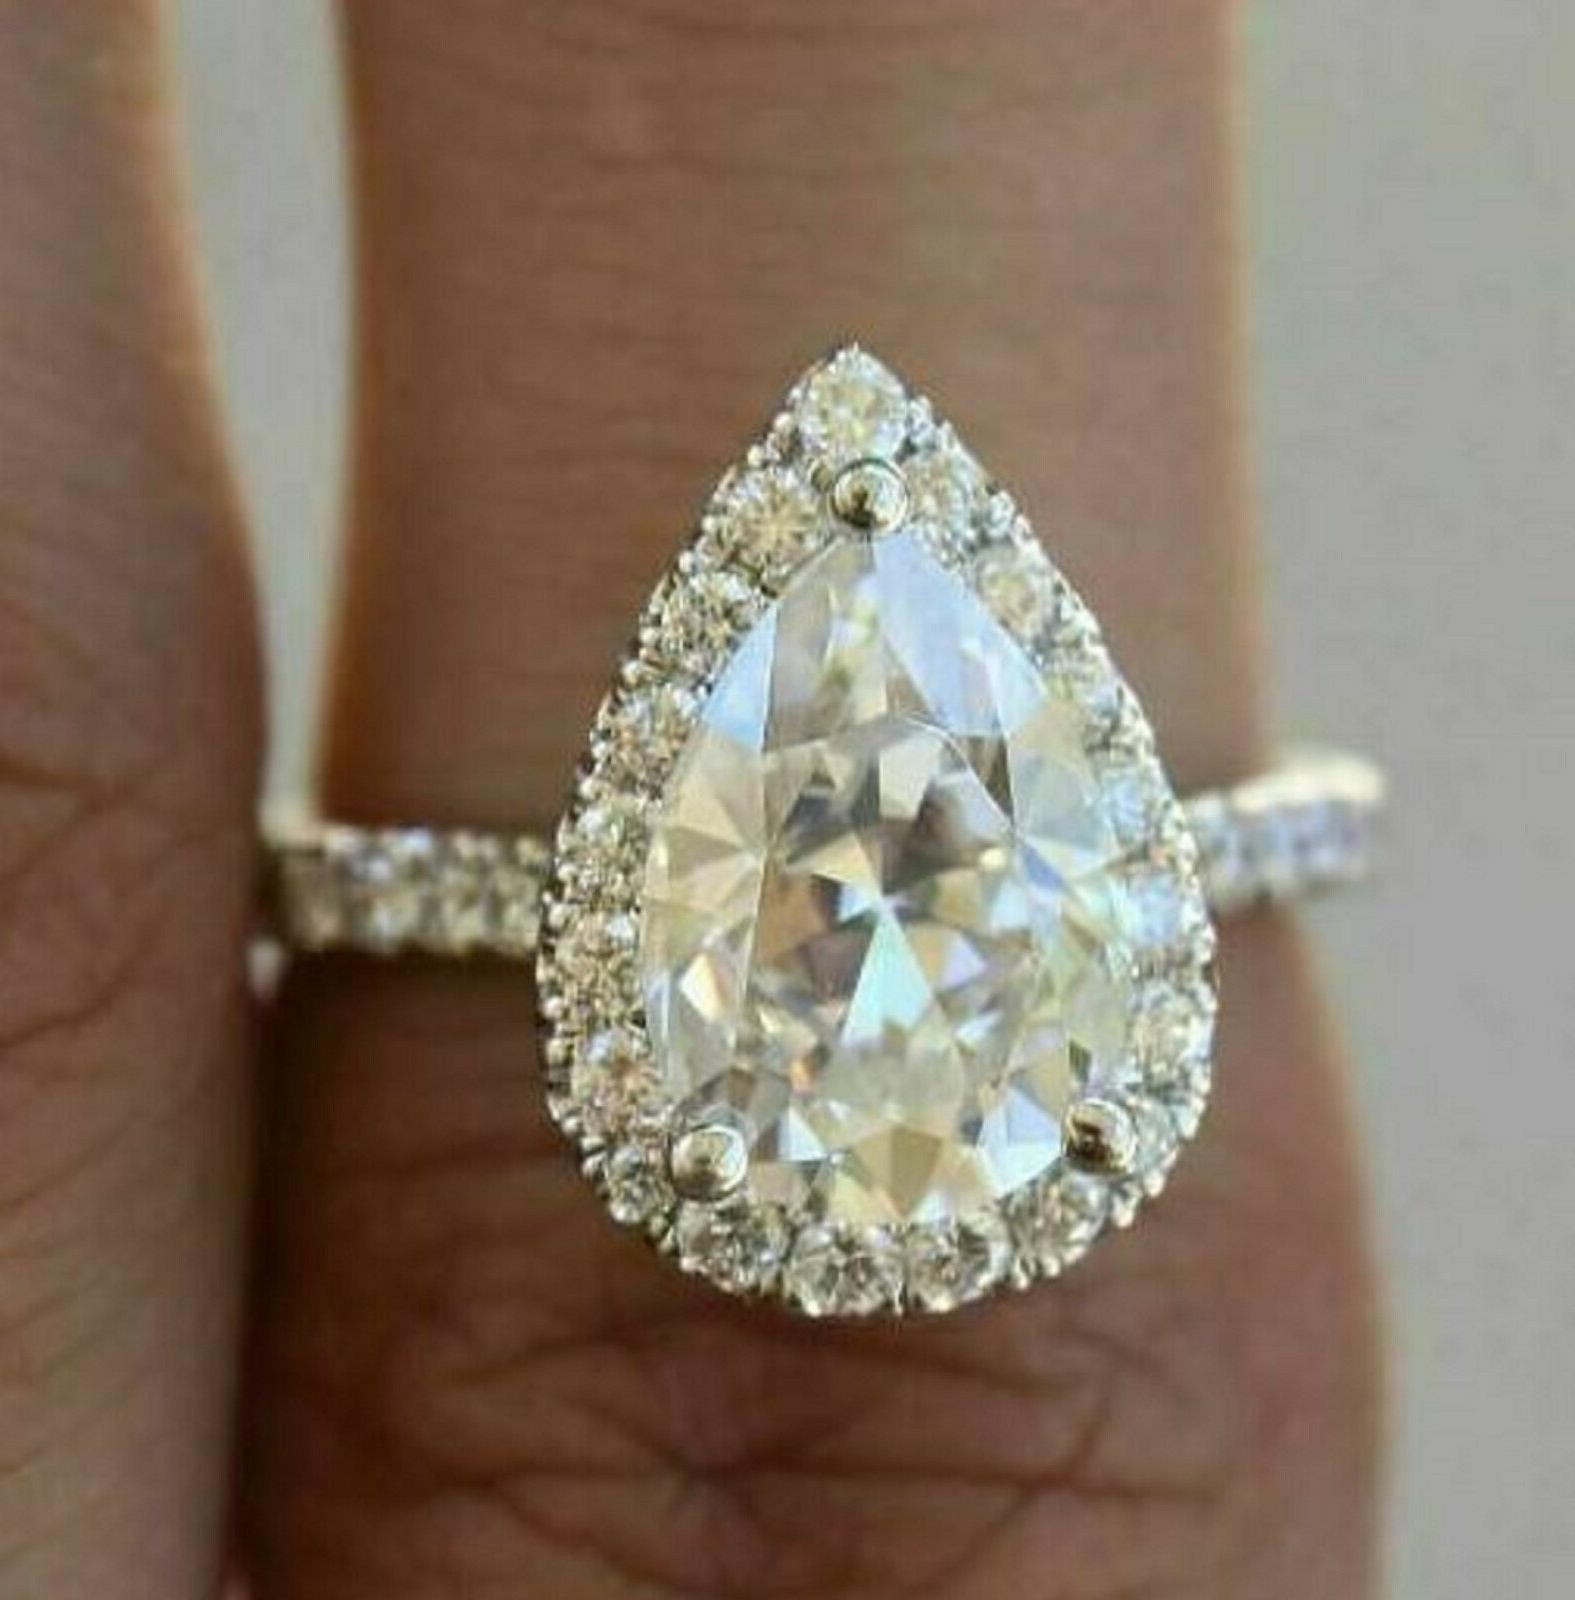 3 27ct pear cut solitaire diamond ring